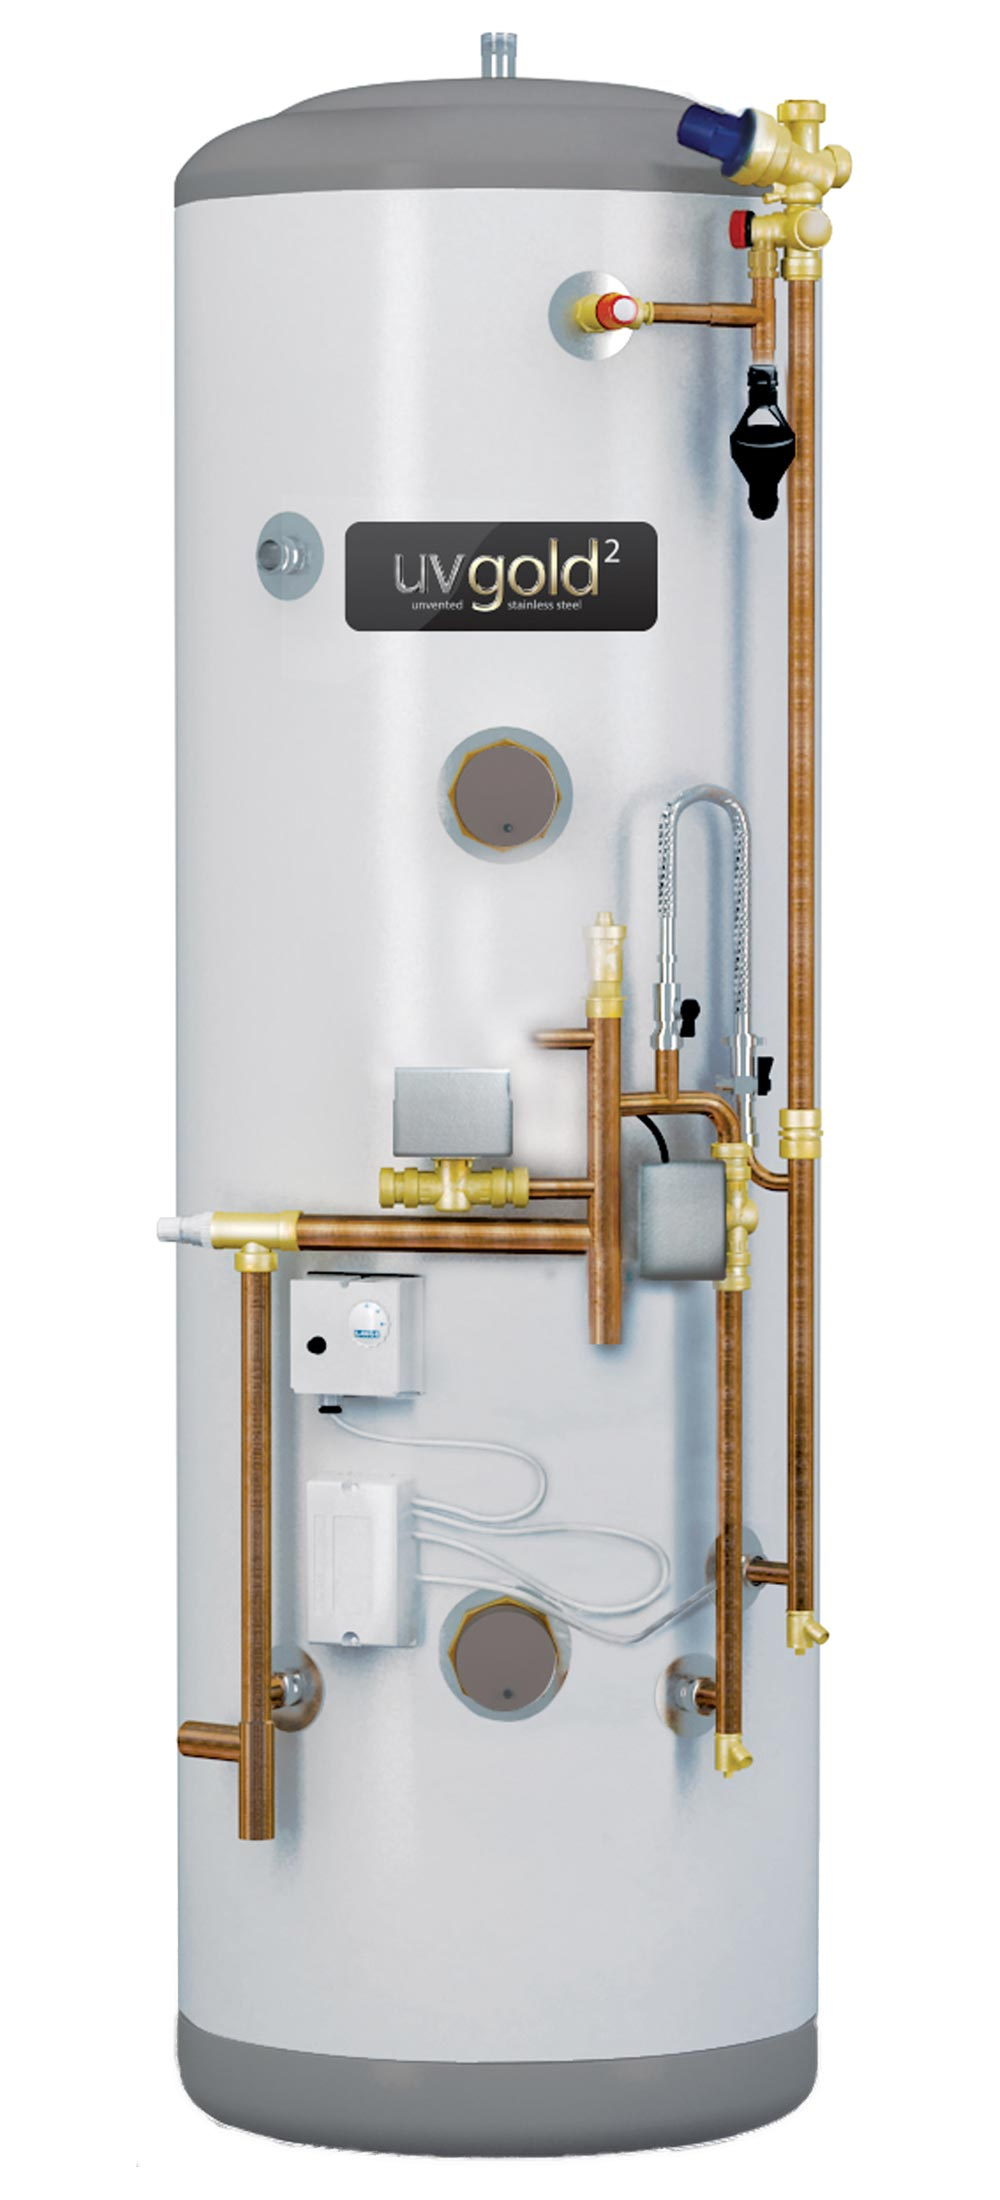 UVgold 2 - Stainless 300L System Fit Unvented Hot Water Cylinder